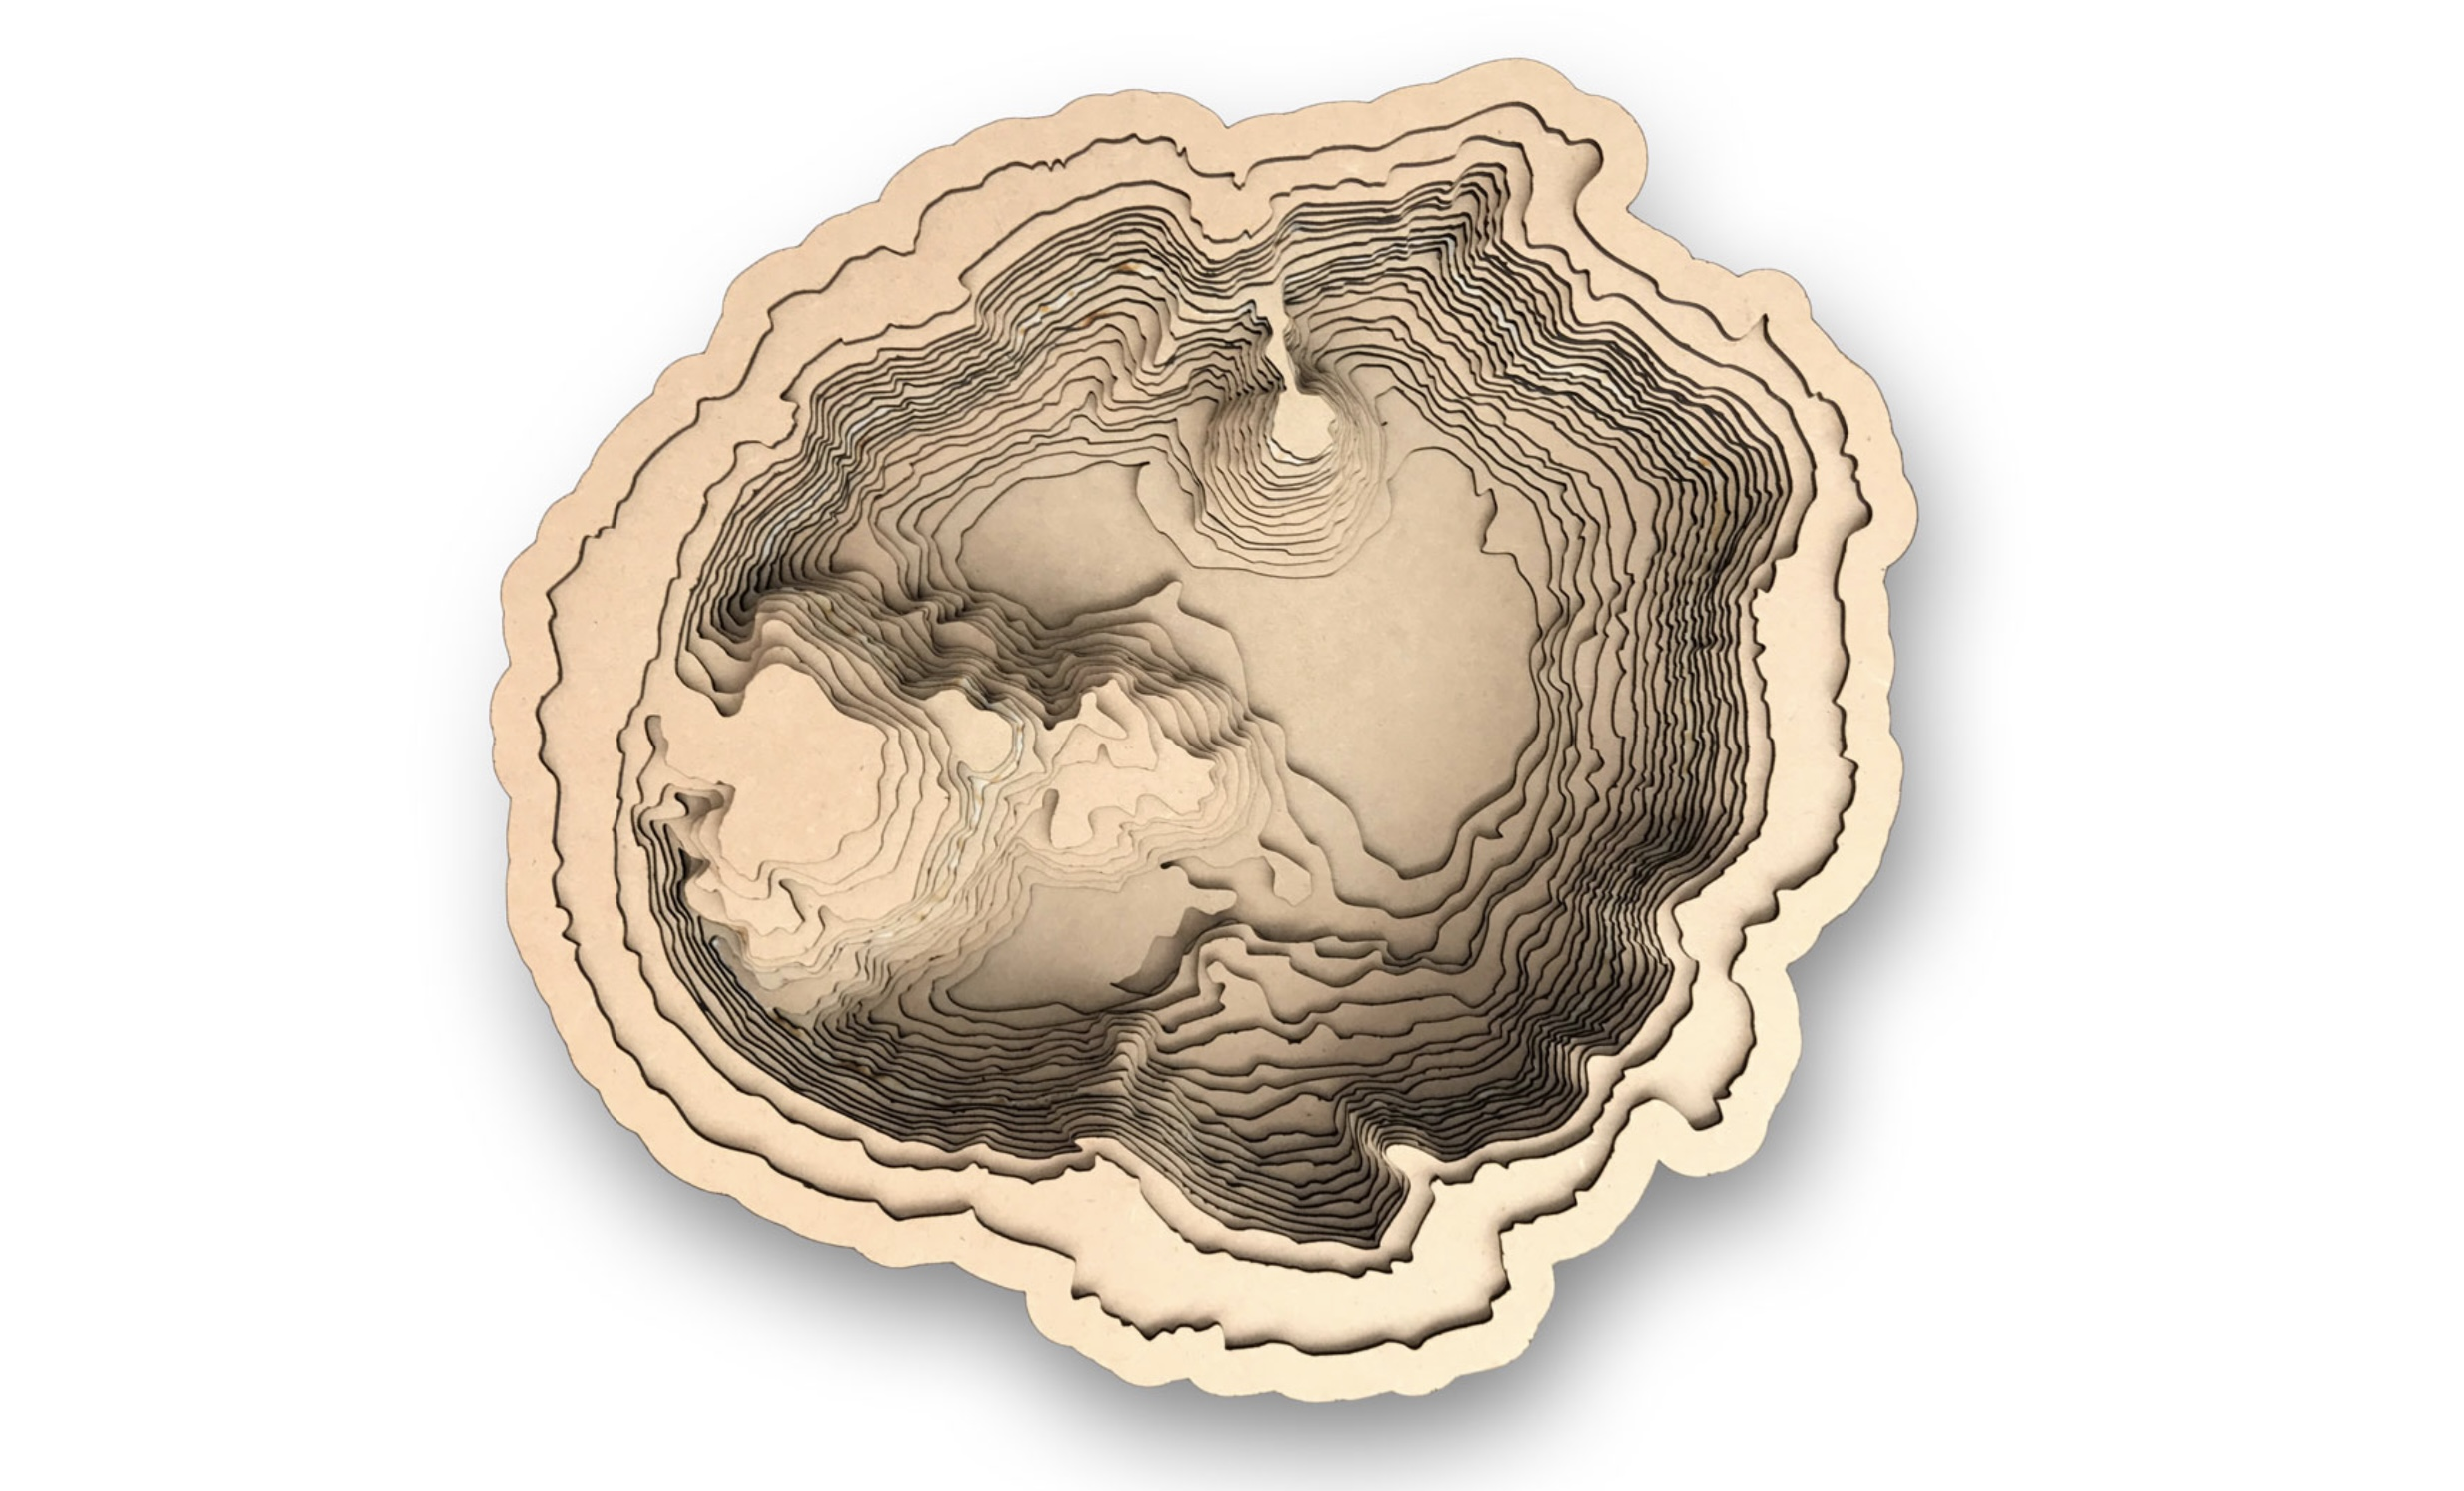 Topological bowls